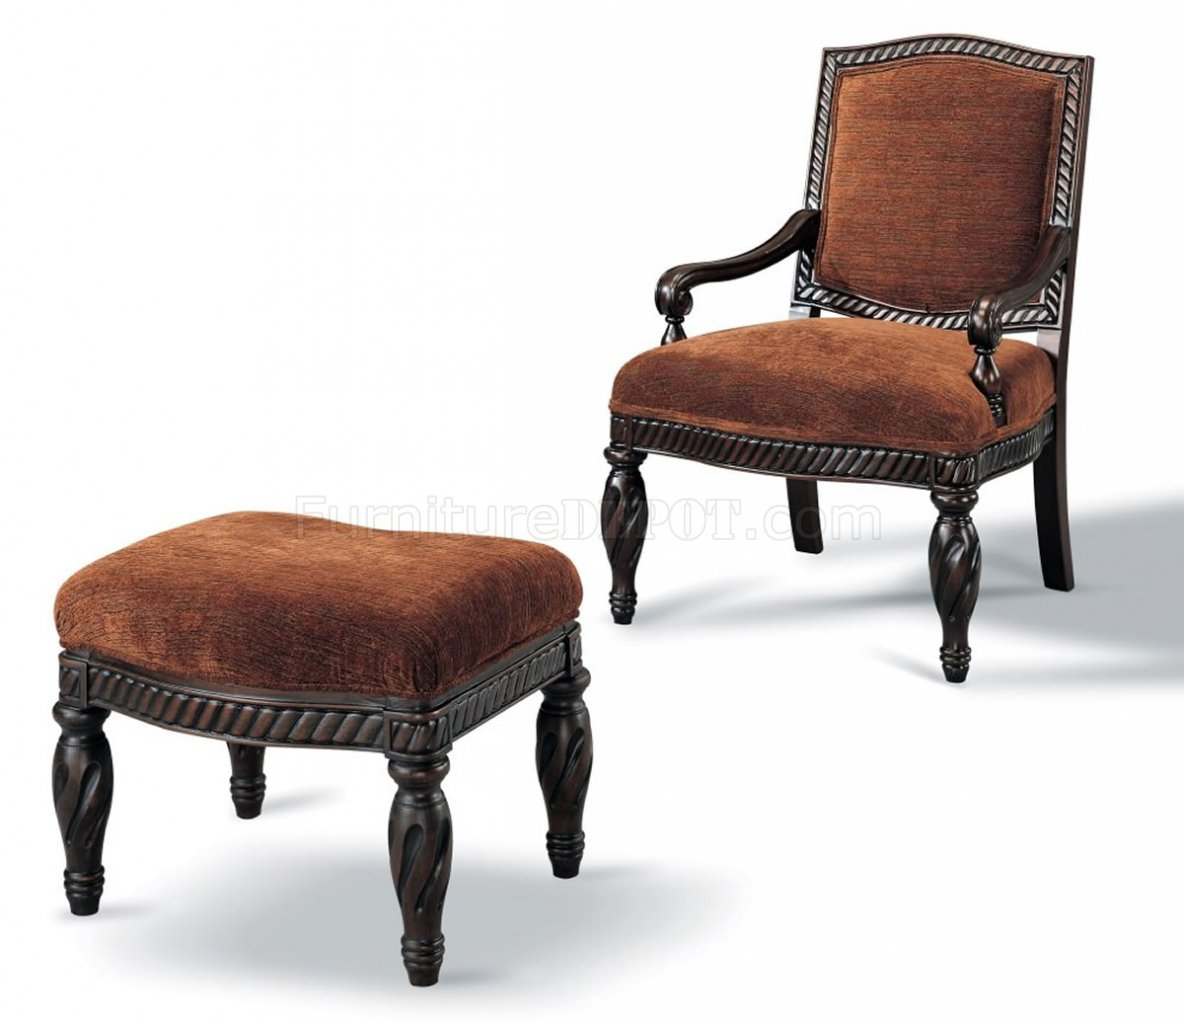 brown accent chair with ottoman cynthia rowley nailhead chairs dark finished elegant w matching